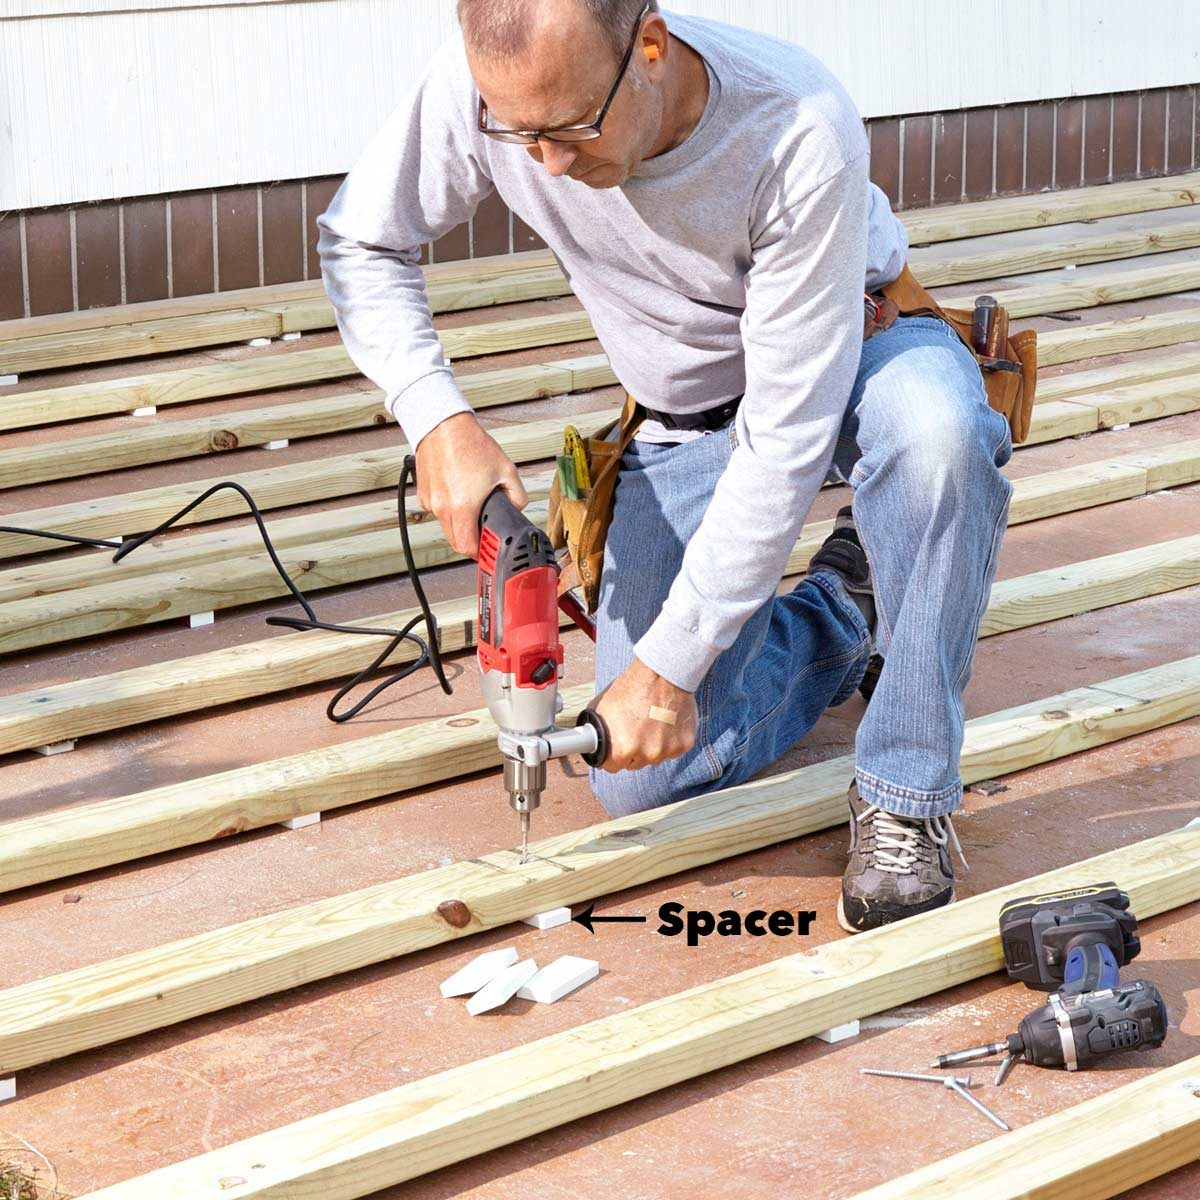 patio deck sleeper spacer